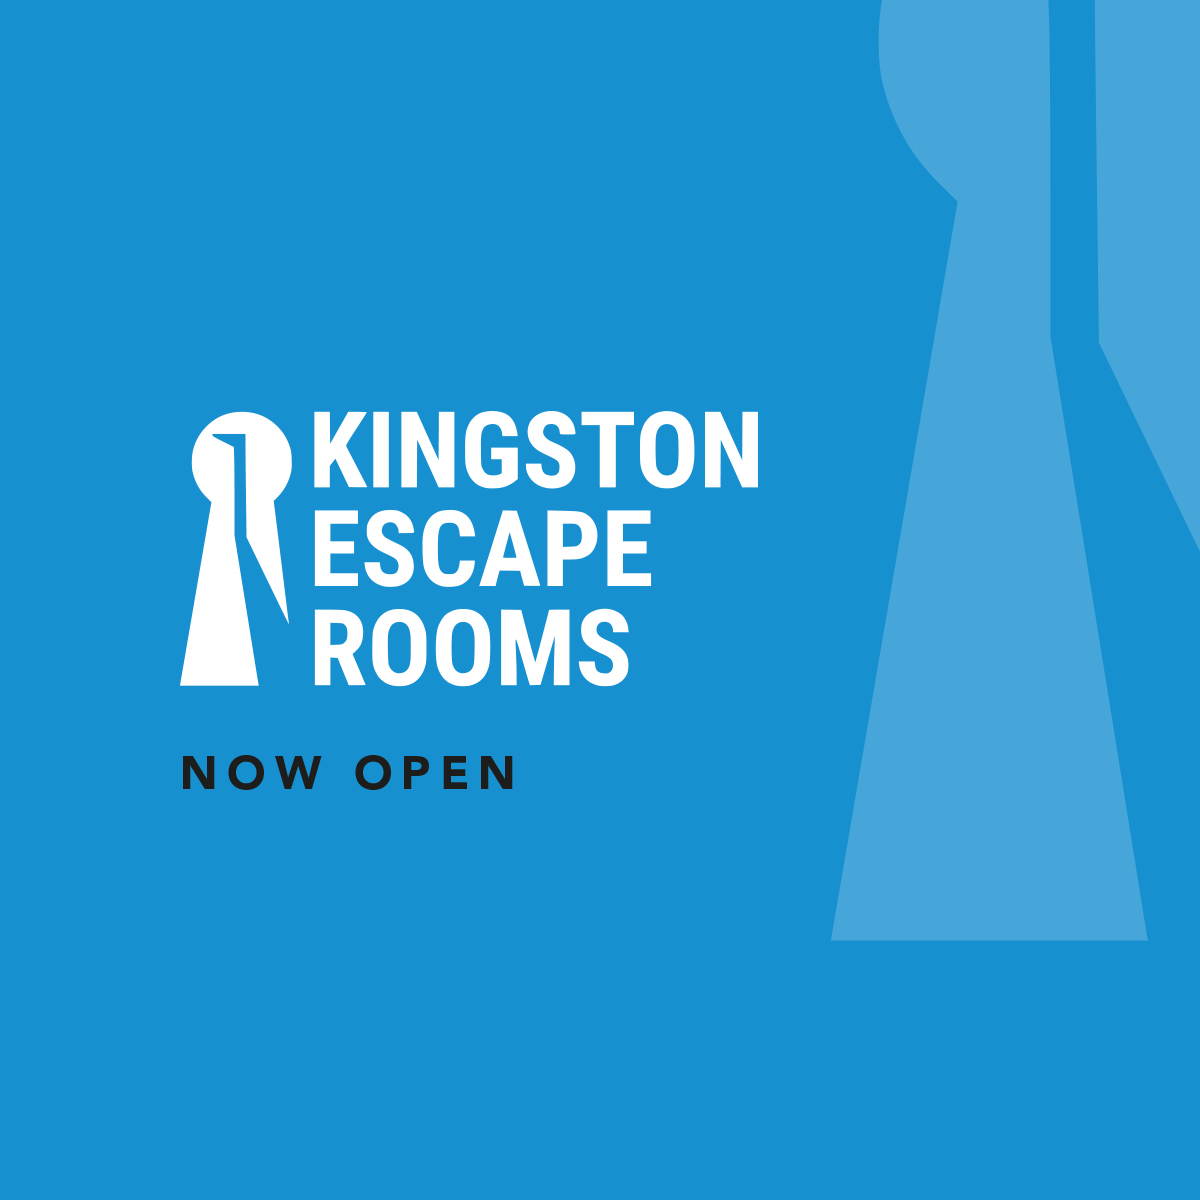 Kingston Escape Rooms – Closed until further notice